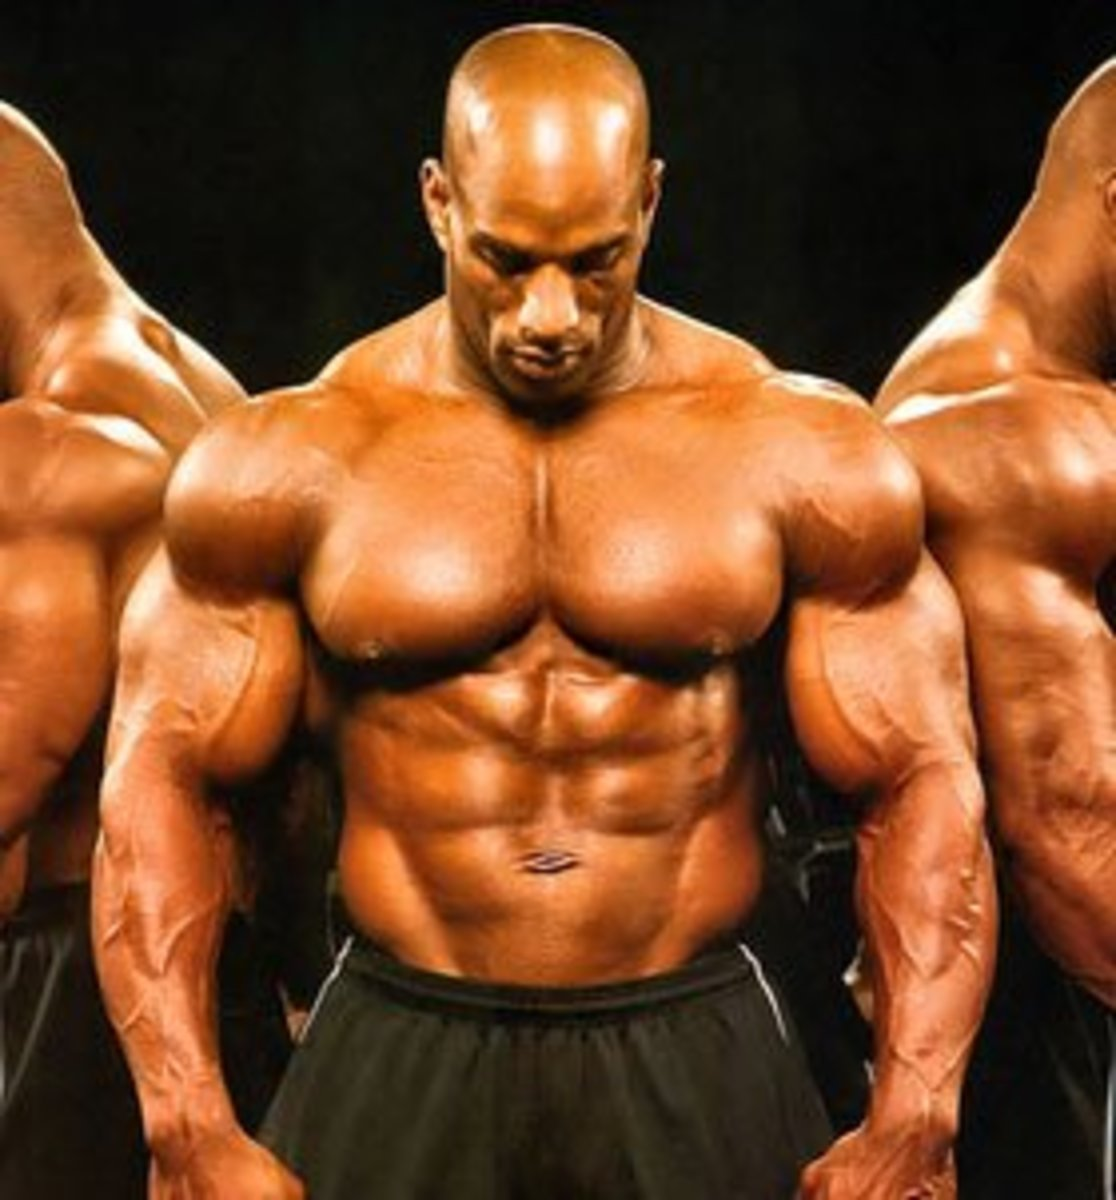 The Process of Building Big, Strong Muscles | HubPages